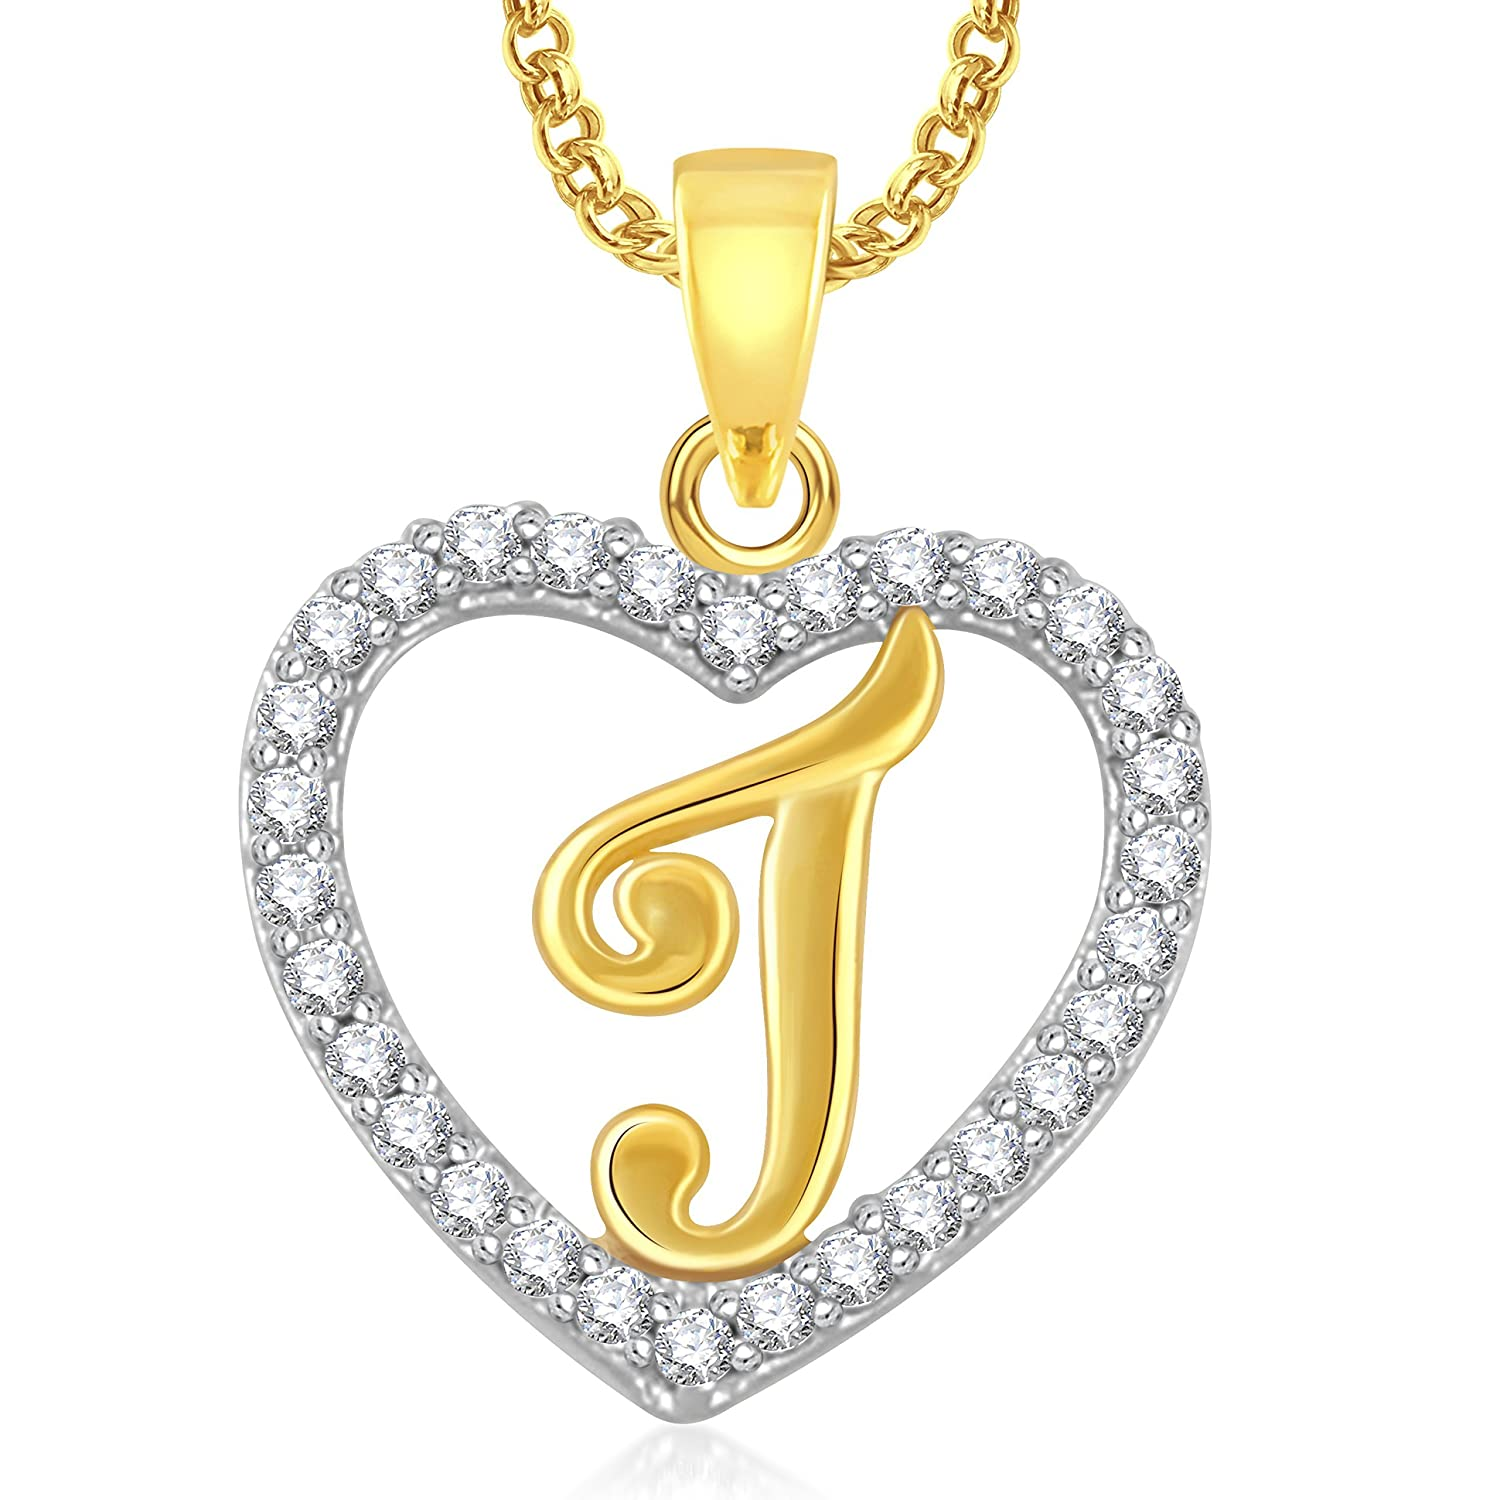 Buy Meenaz U0027Ju0027 Letter Heart With Chain Gold Plated In American Diamond  Pendant Locket Alphabet For Women And Men Cz Ps403 Online At Low Prices In  India ...